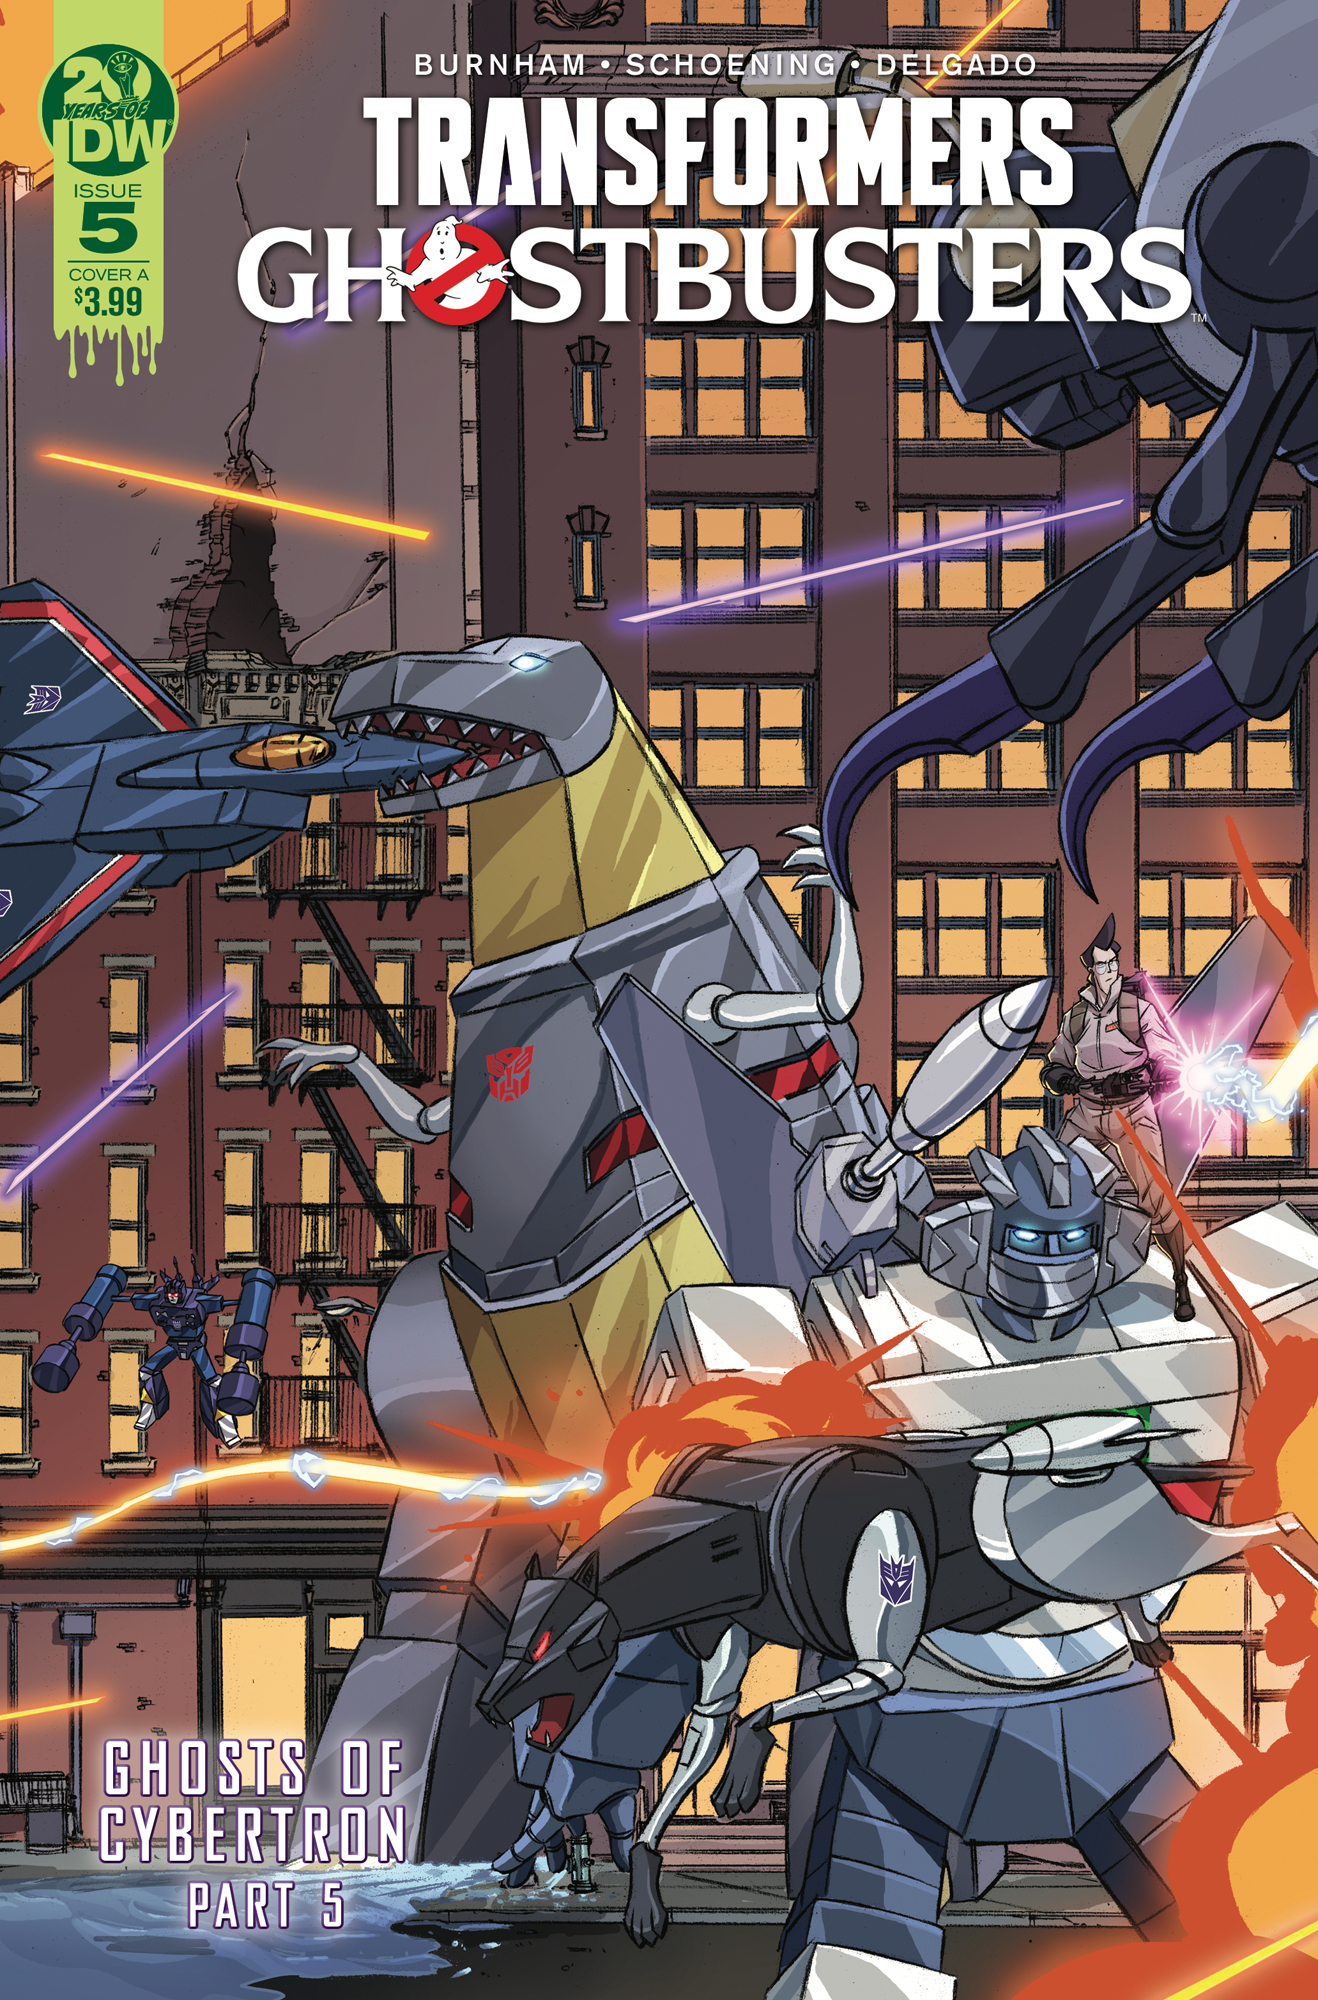 TRANSFORMERS GHOSTBUSTERS #5 (OF 5) CVR A SCHOENING